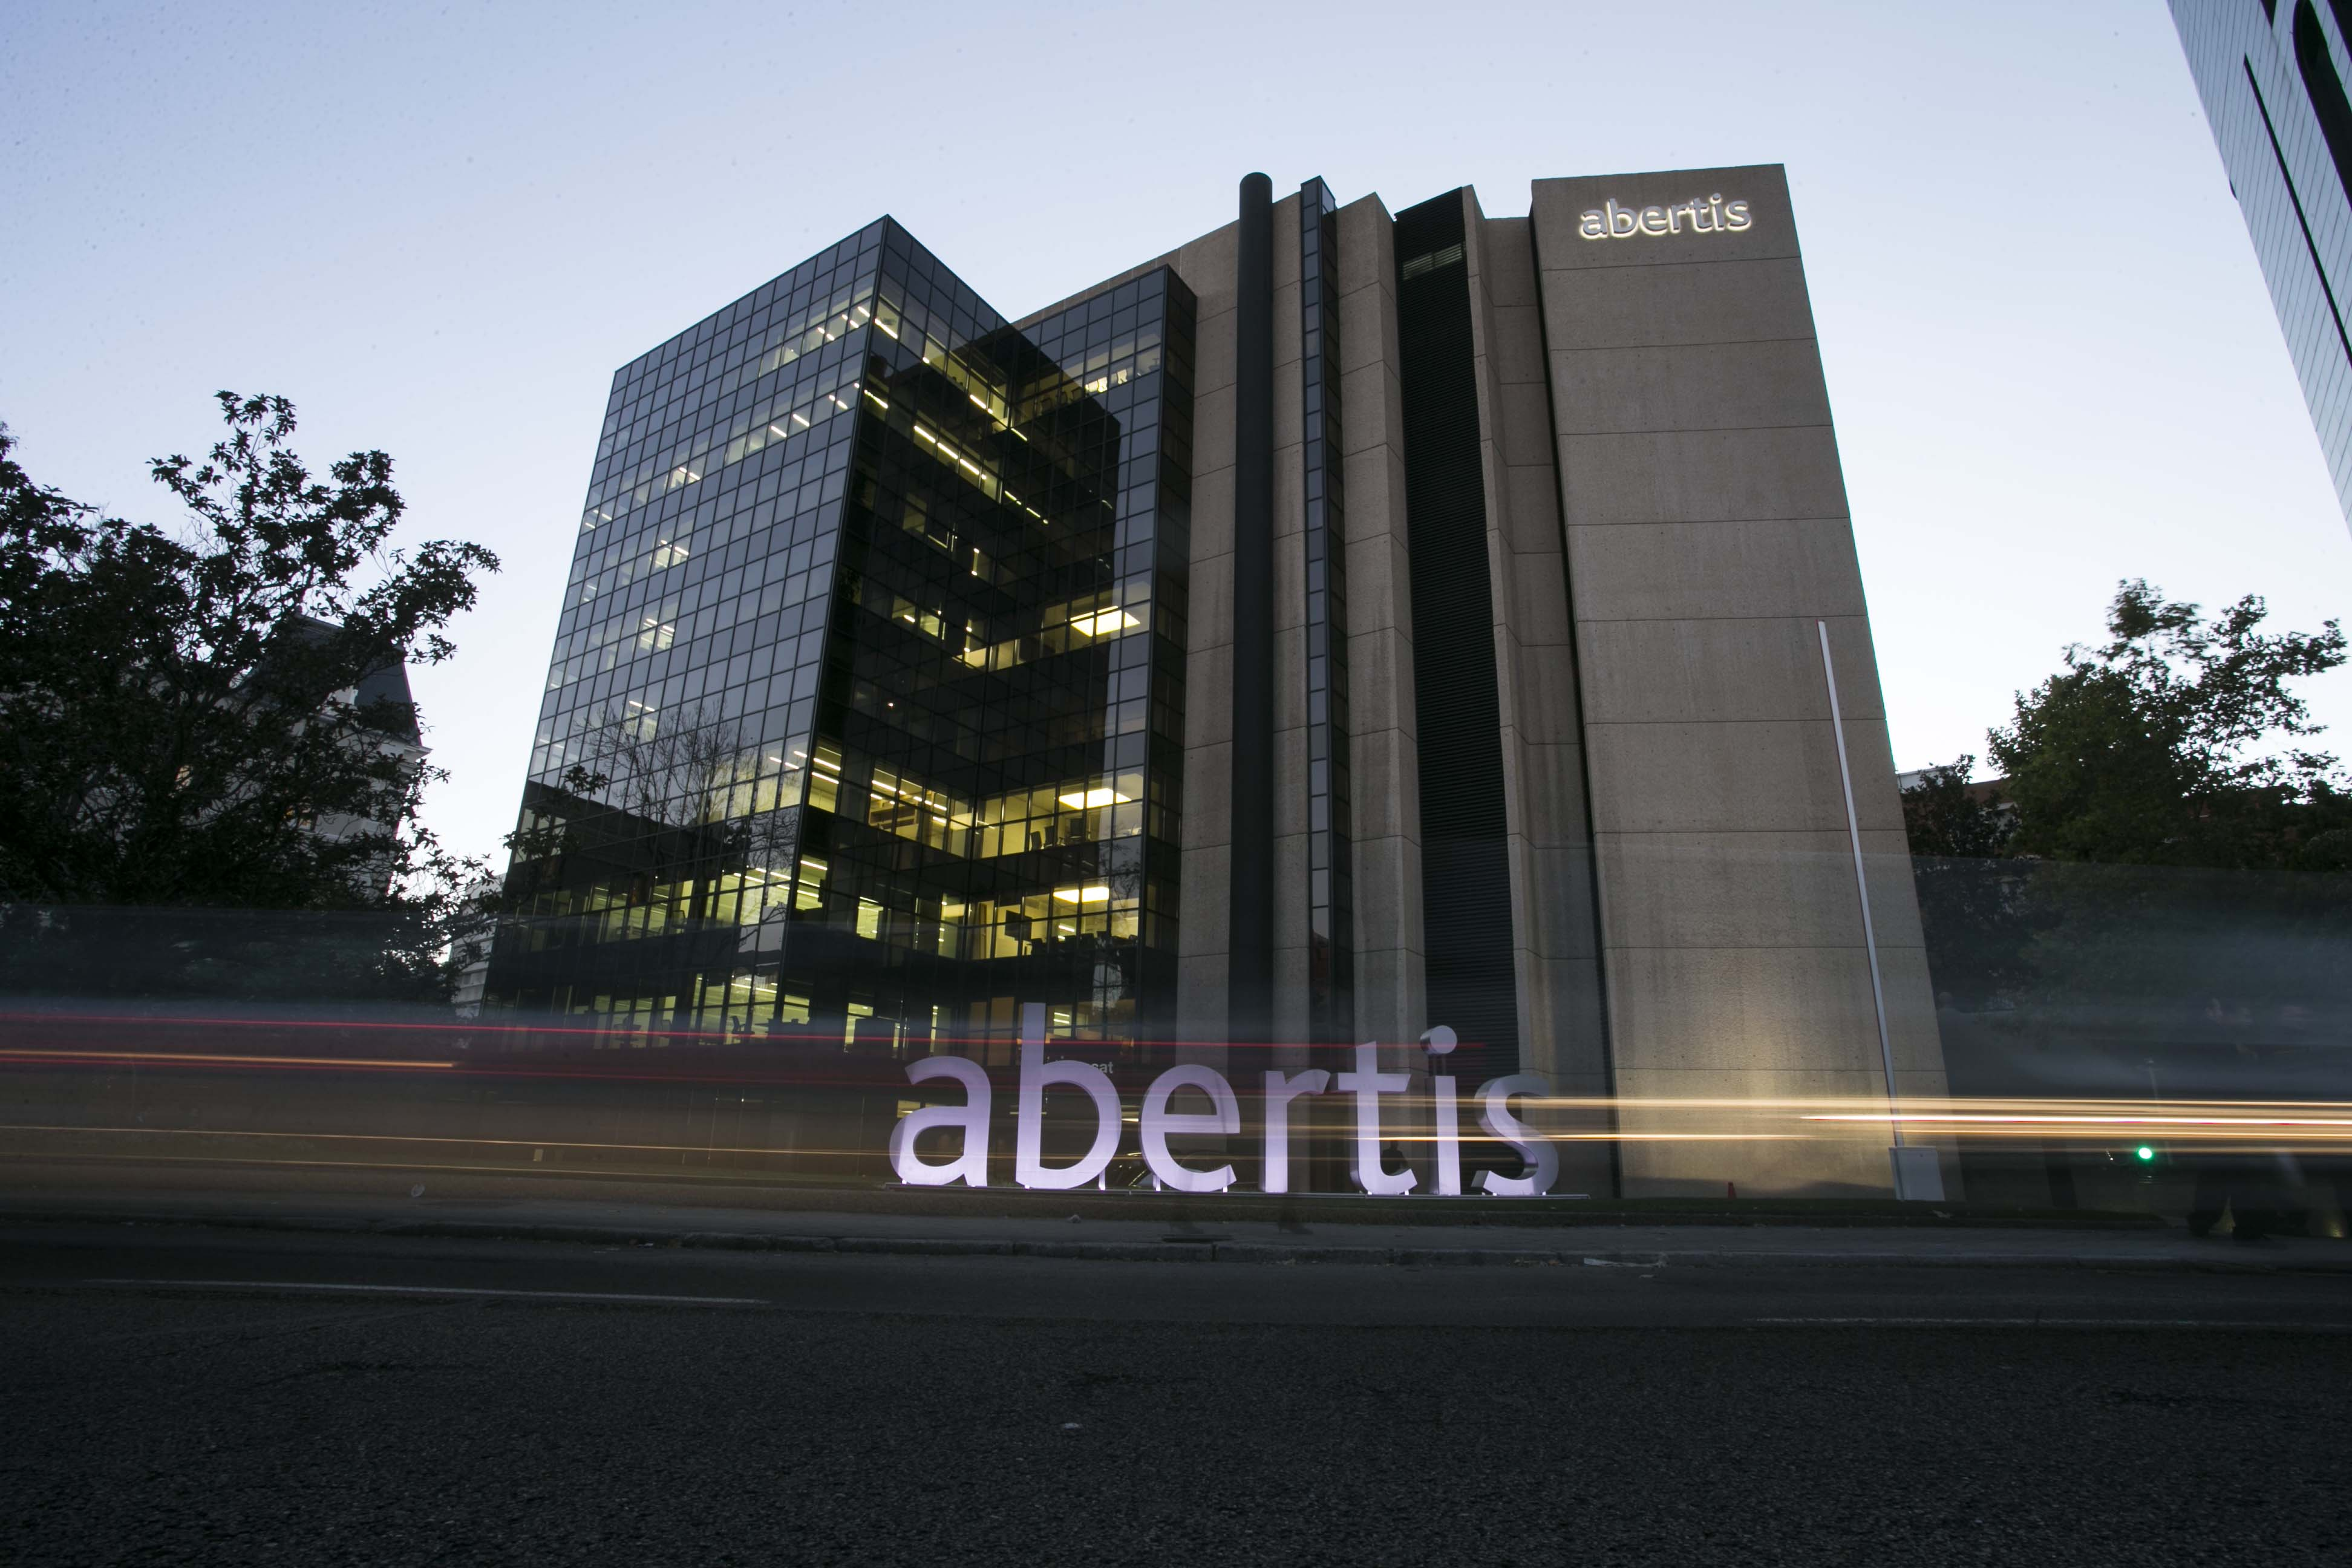 Abertis closes the sale of its stake in Hispasat to Red Eléctrica